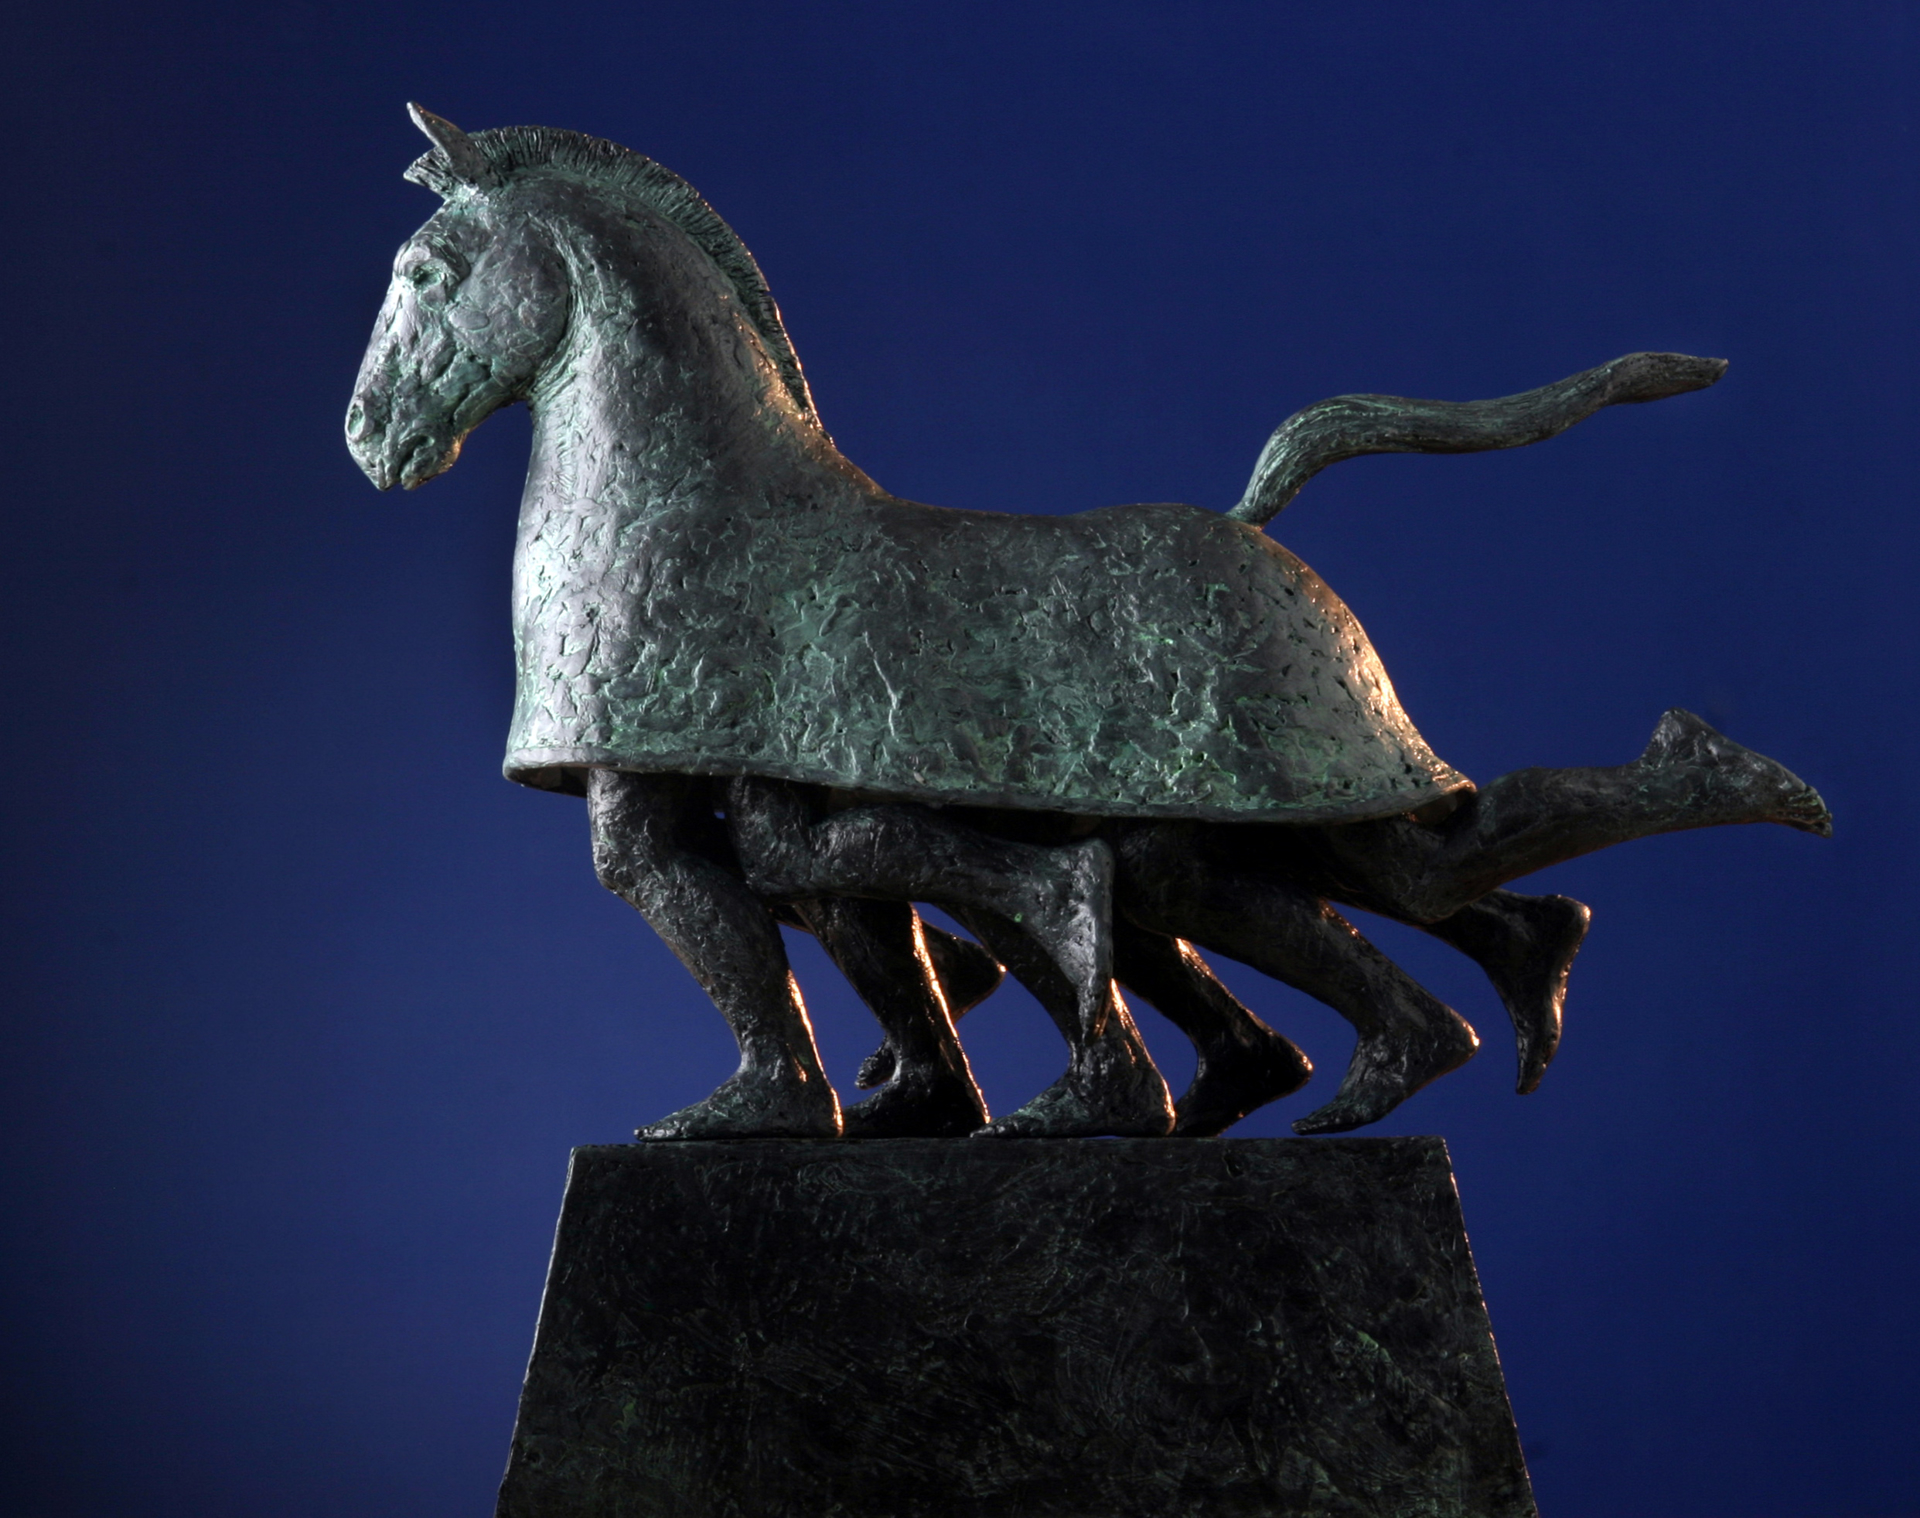 Trojan Horse - Medium (ed. 125) by Bill Starke